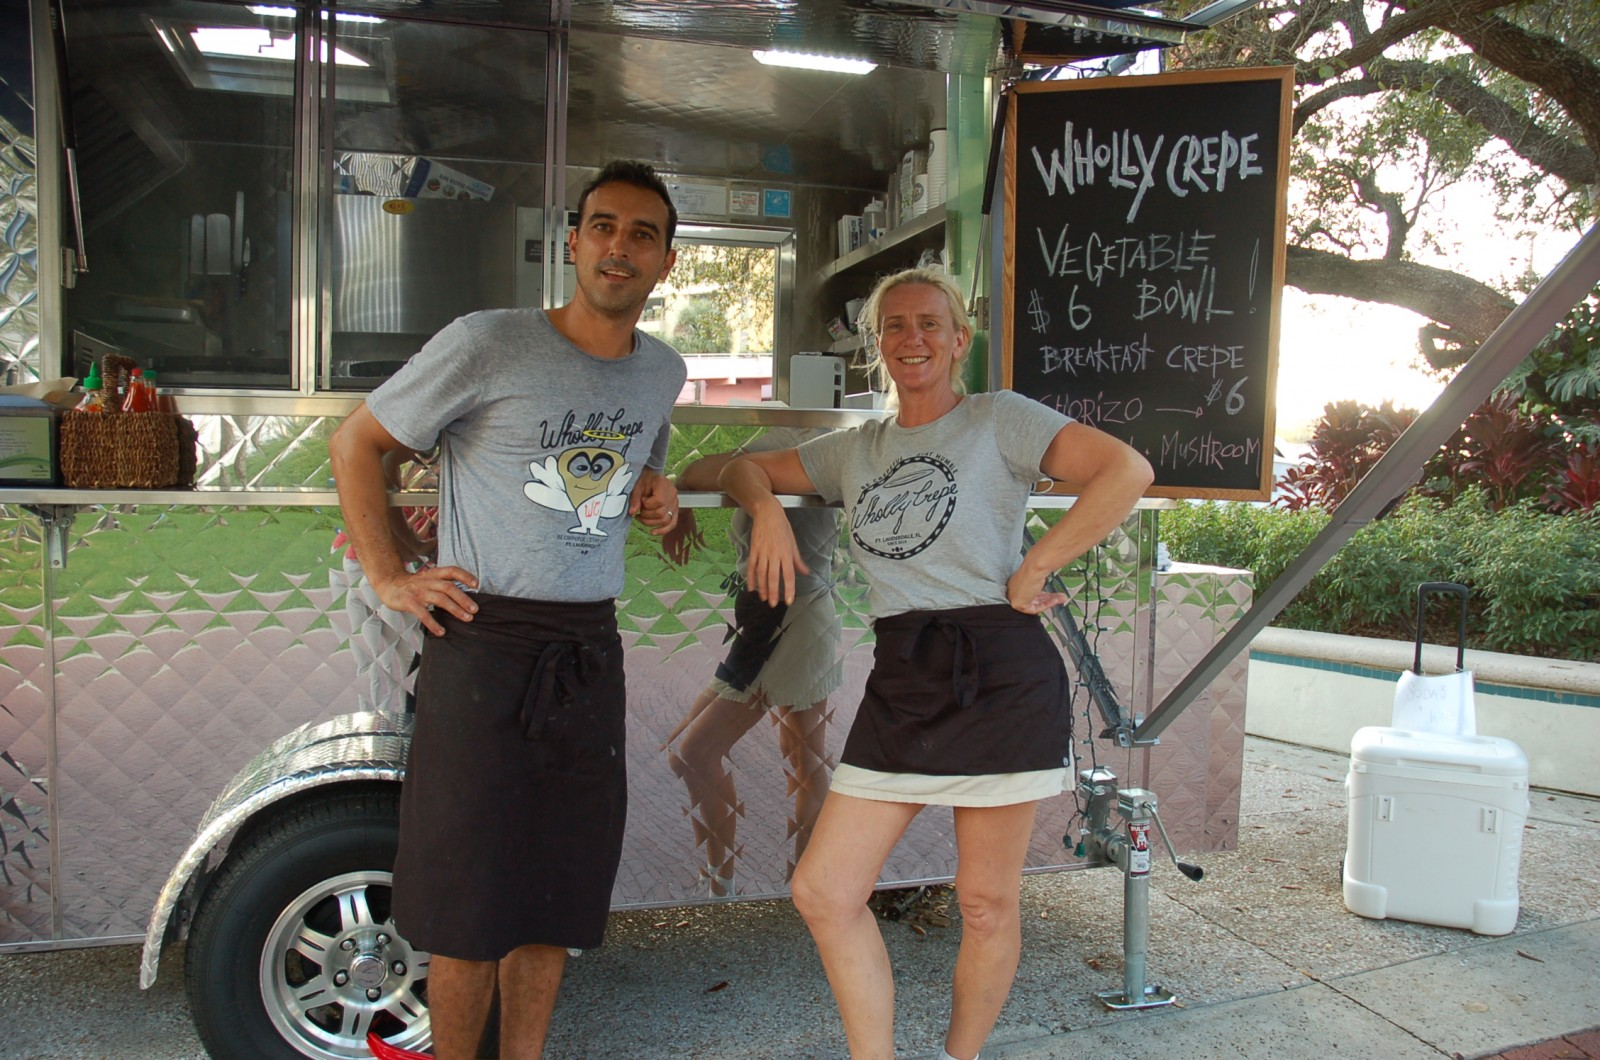 Former yachties Terence Booth and Jane Ormerod bring their skills as chefs to Booth's new food truck, Wholly Crepe. Photo by Lucy Reed